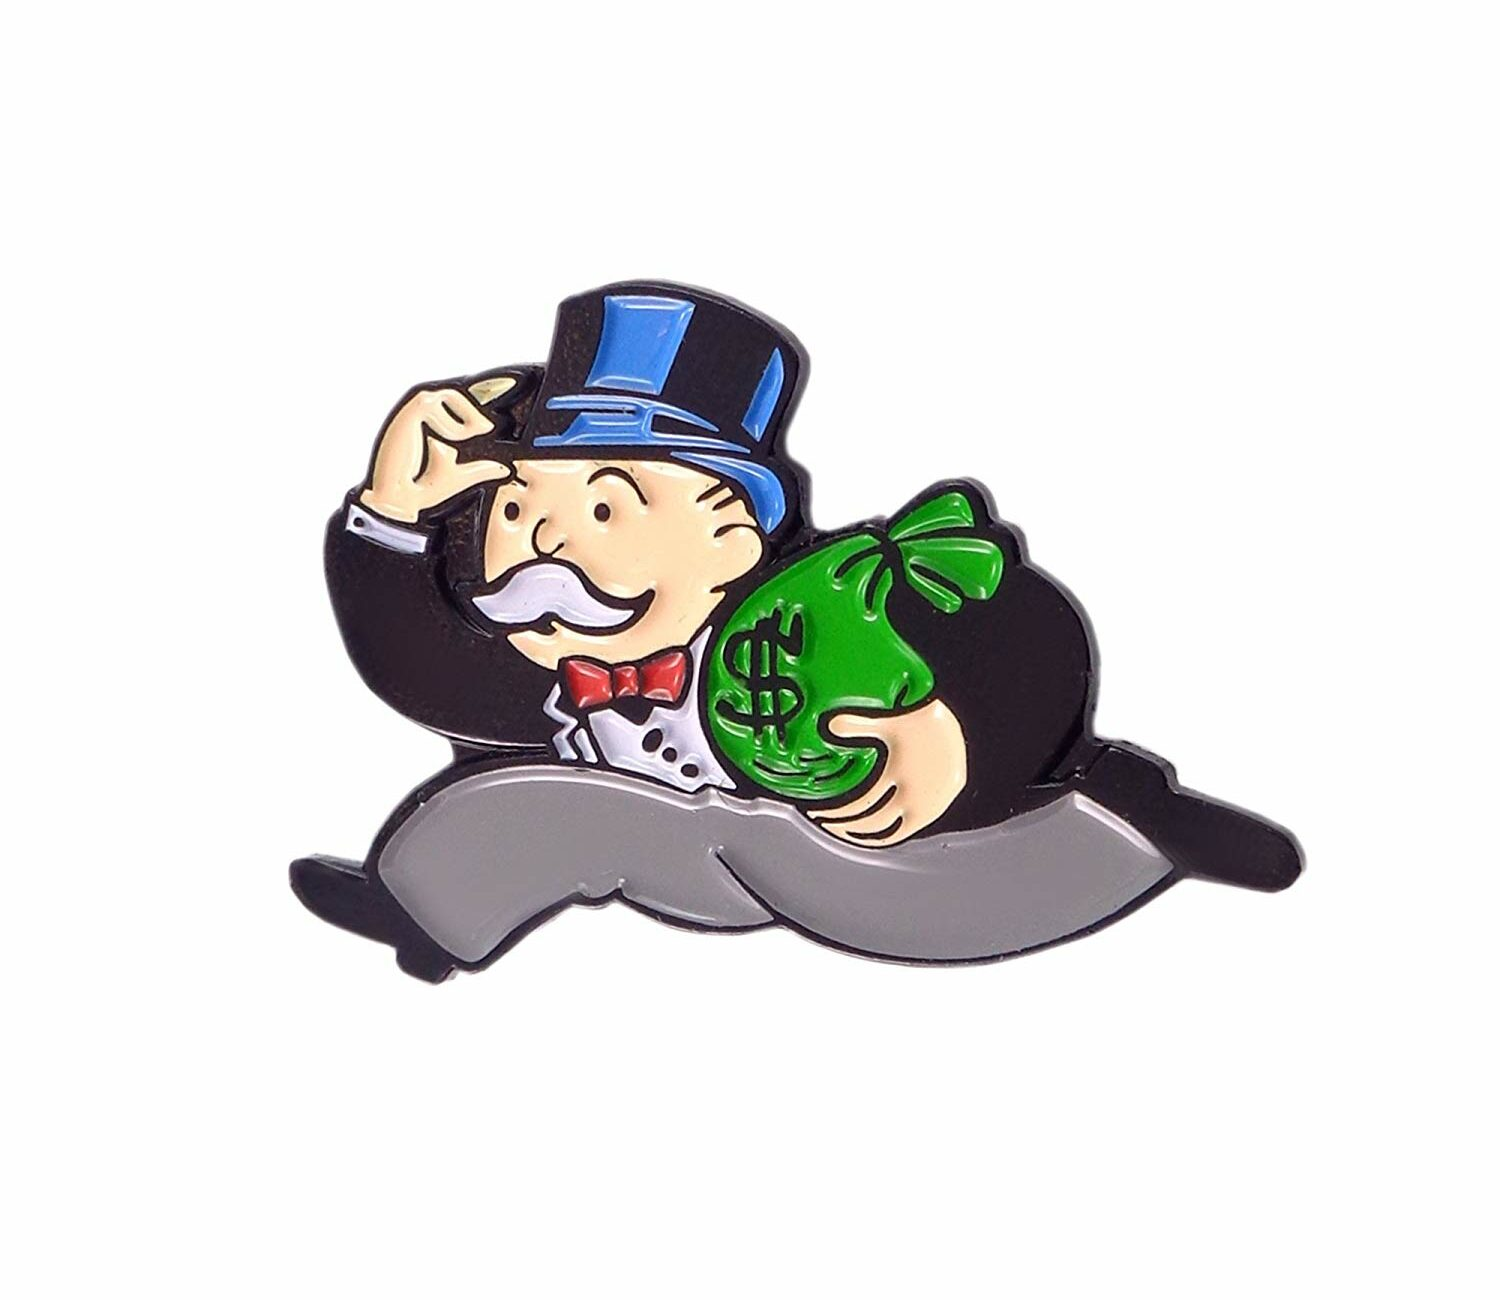 Moneybags character from Monopoly Boardgame